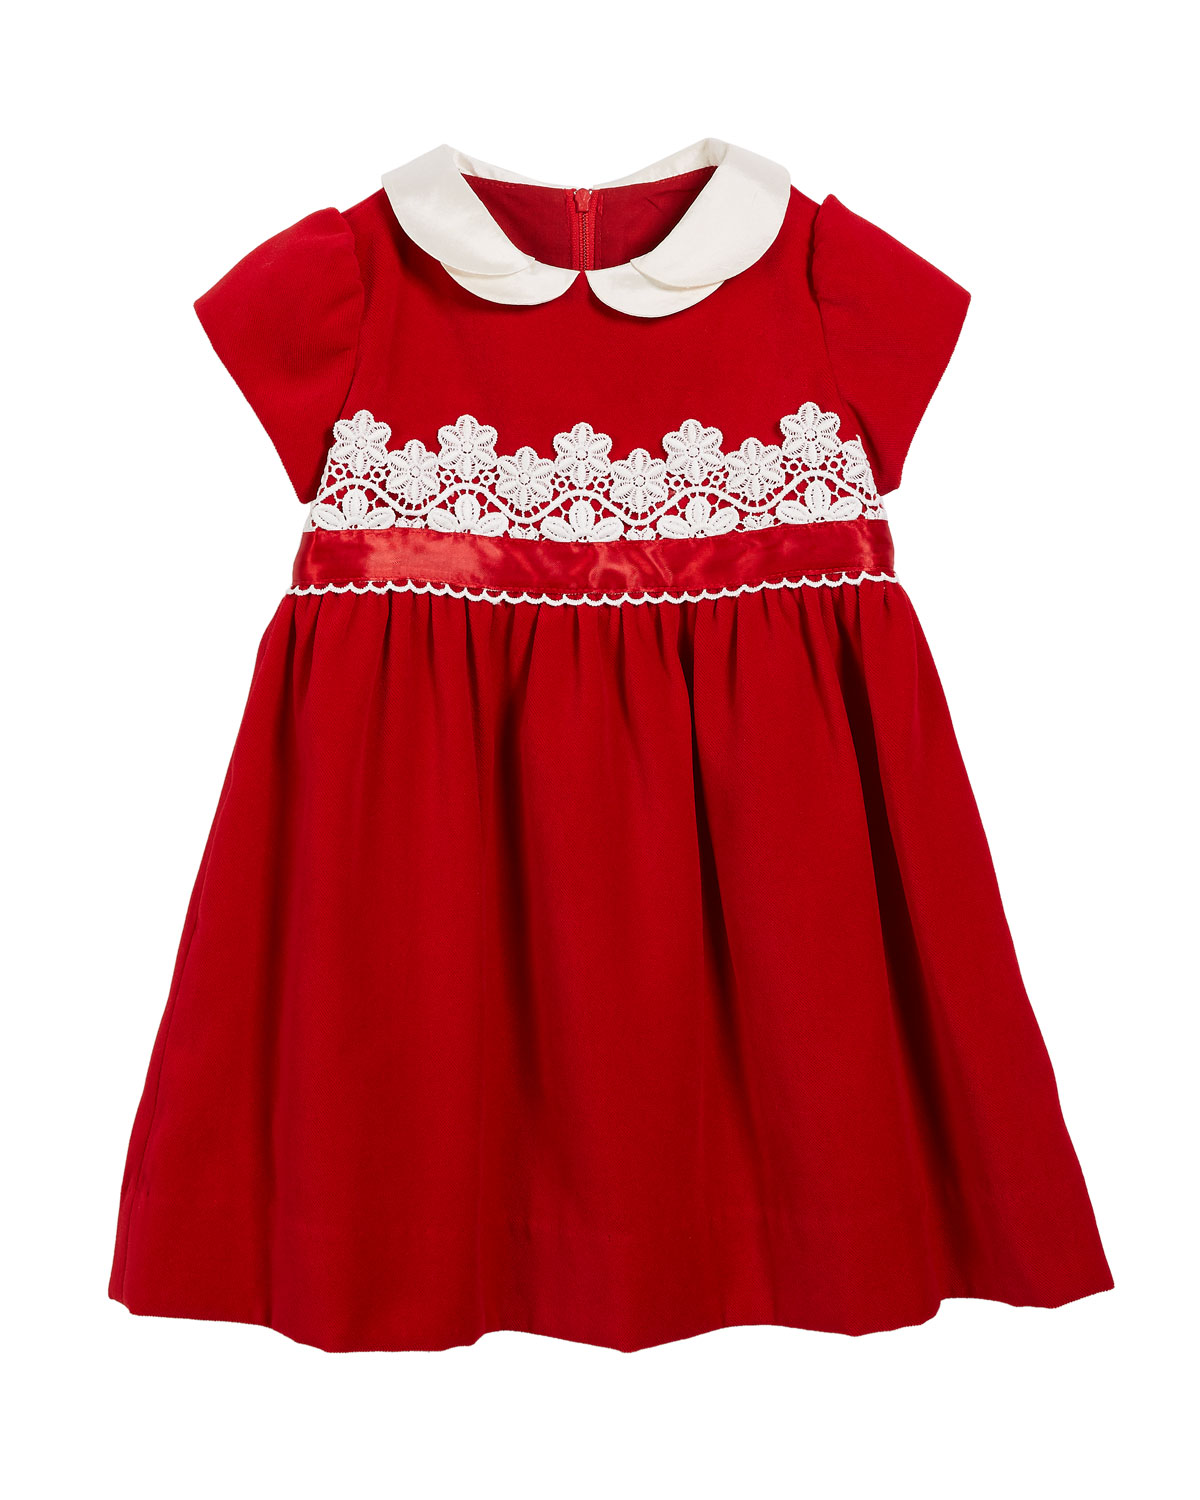 Velvet LaceTrim Dress Size 324 Months